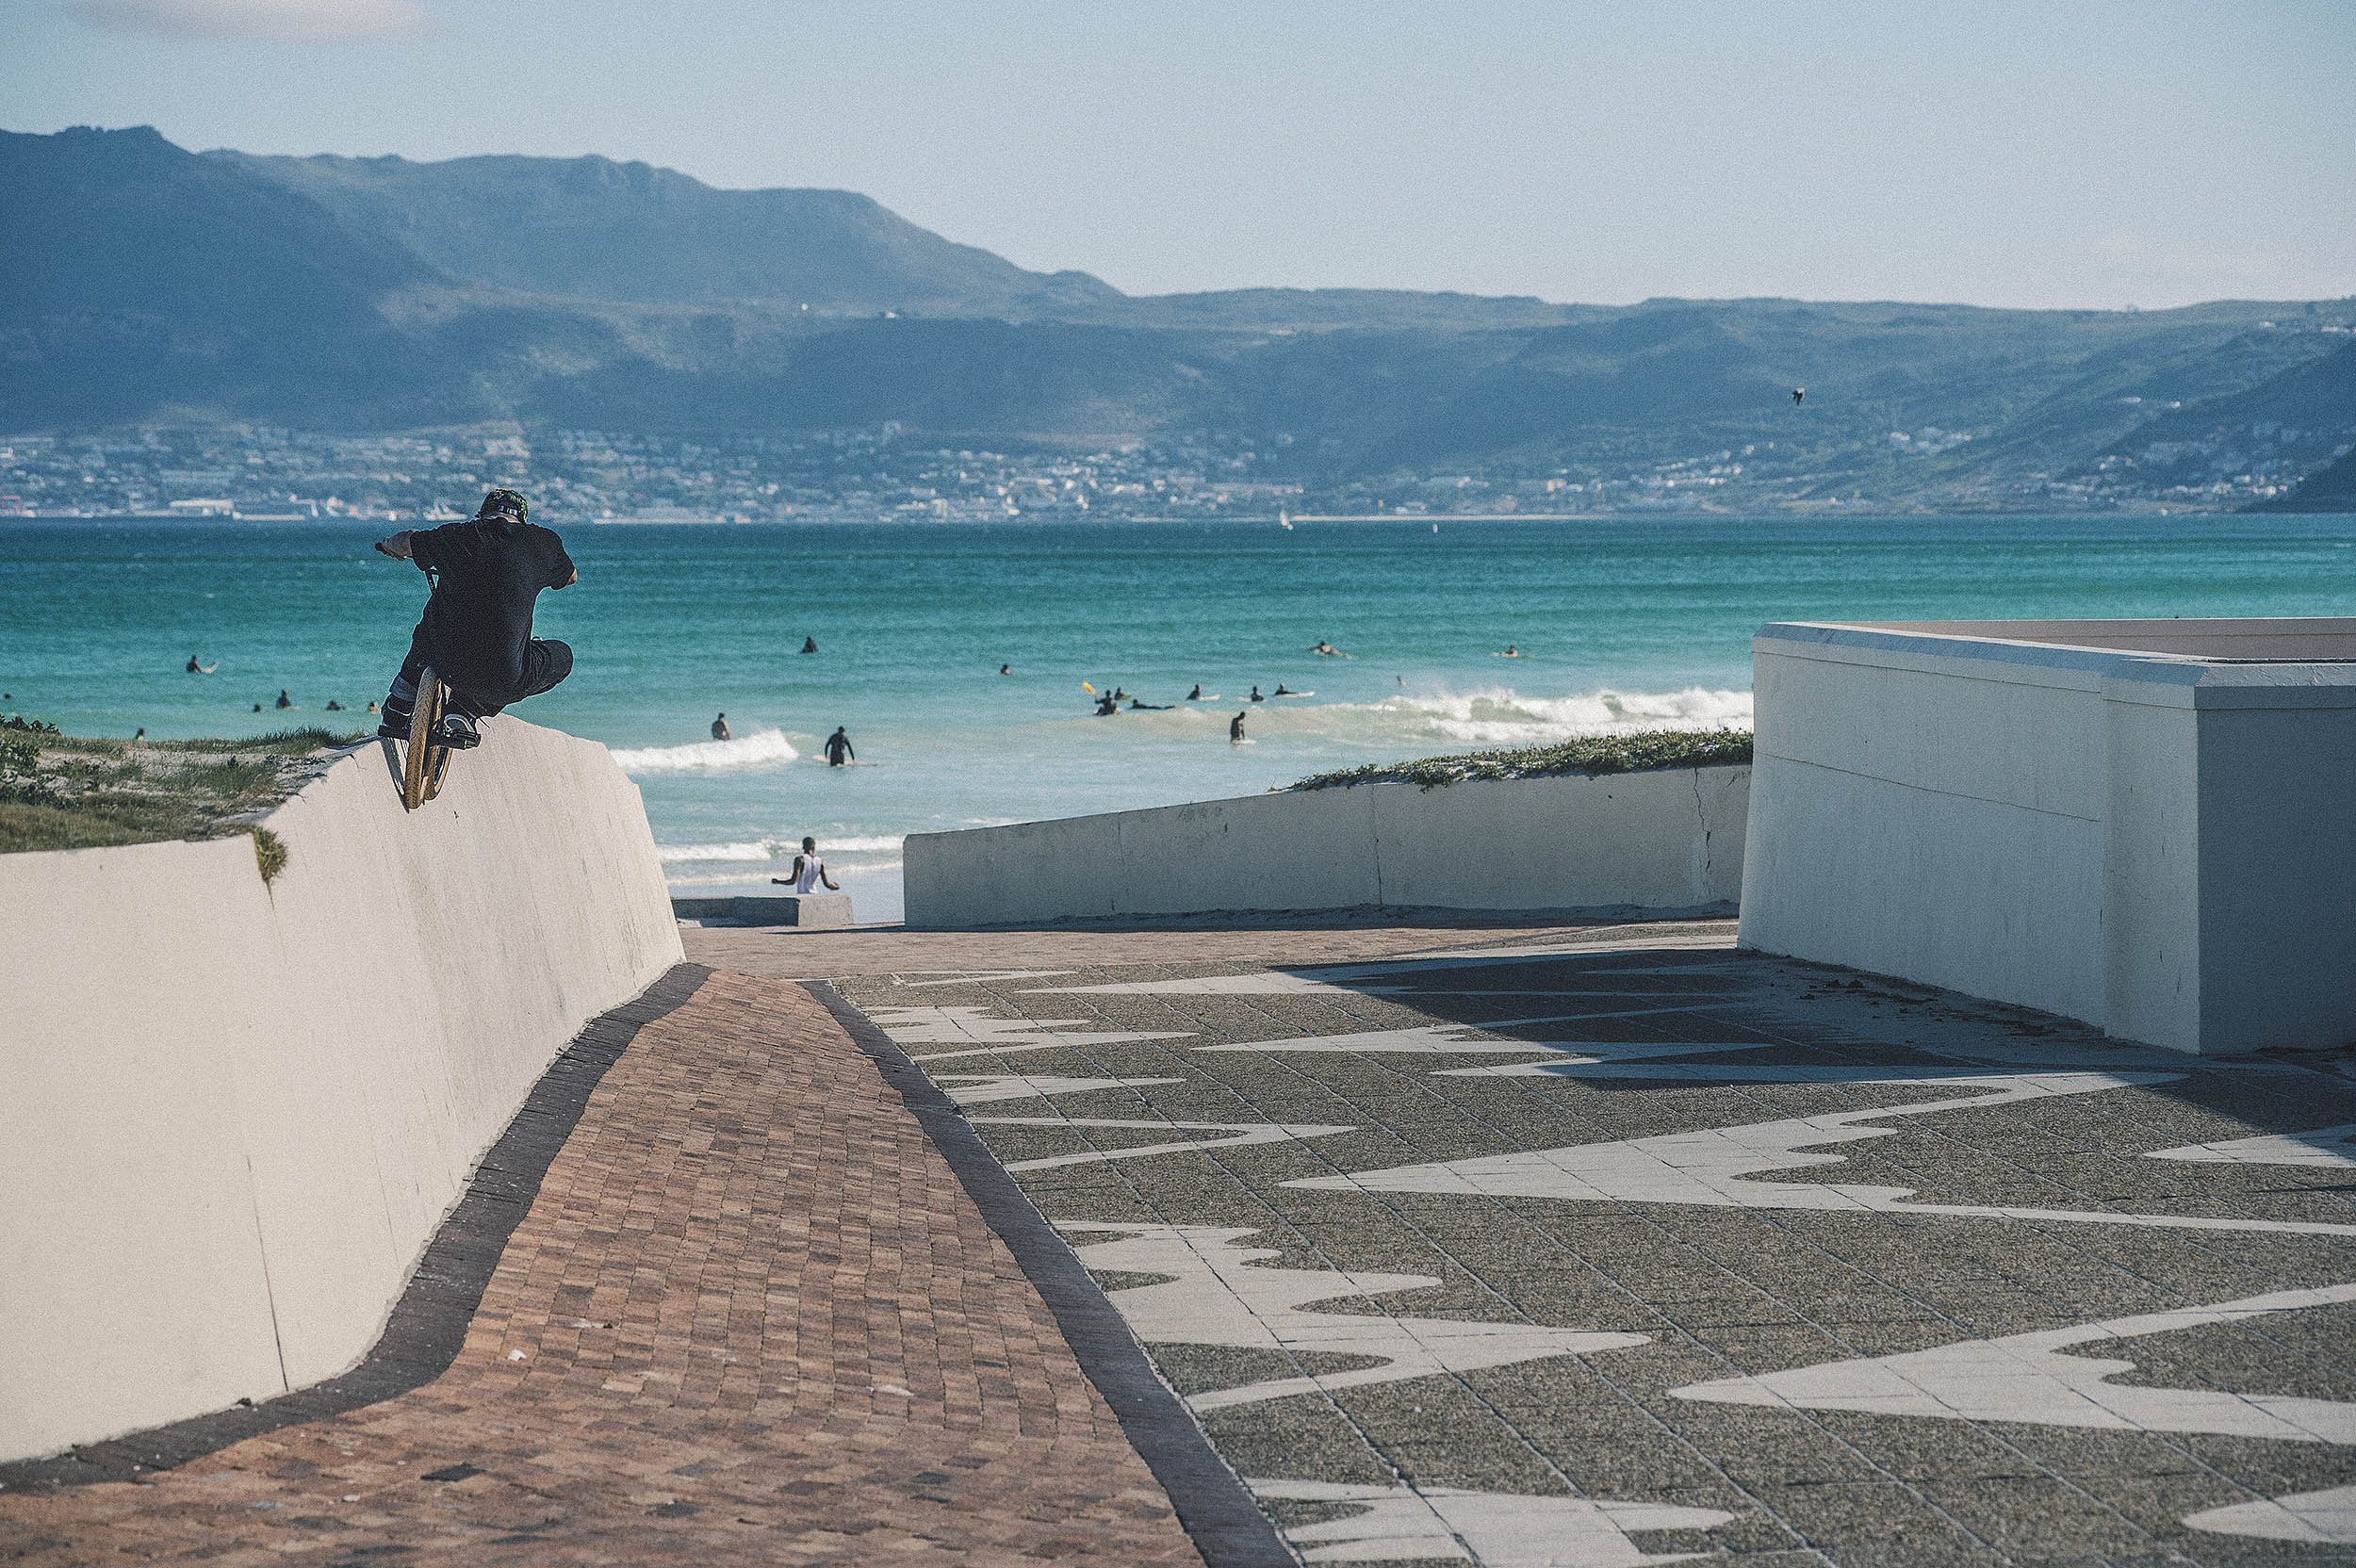 Ben Lewis for Monster Energy - Cape Town, South Africa